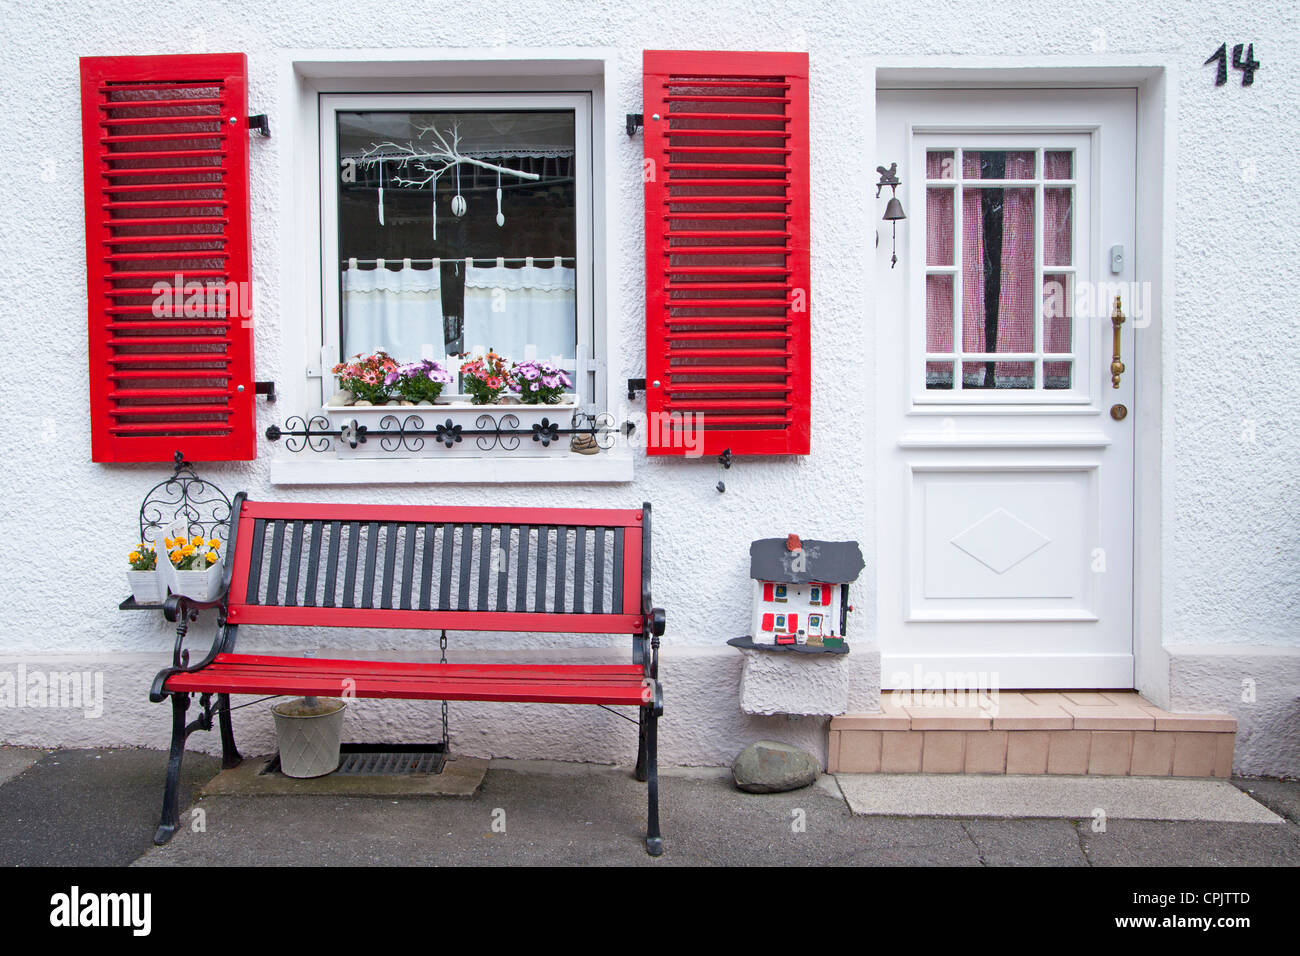 part of a house in the old town of Arnsberg, Sauerland, North Rhine-Westfalia, Germany Stock Photo